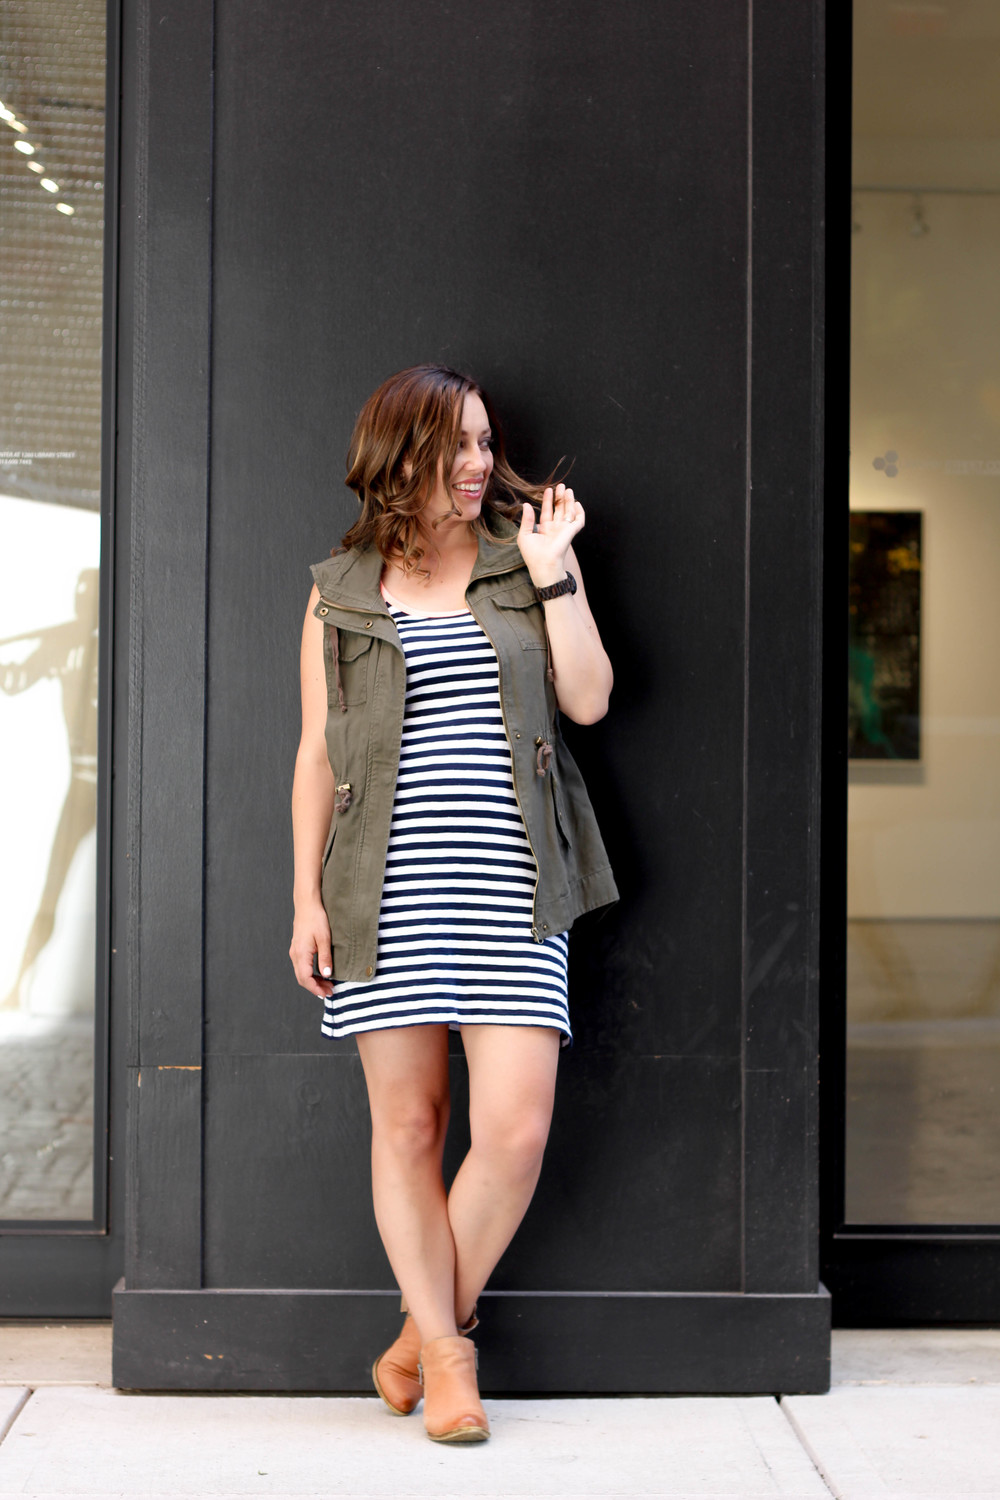 green vest with black and white striped dress and booties outfit